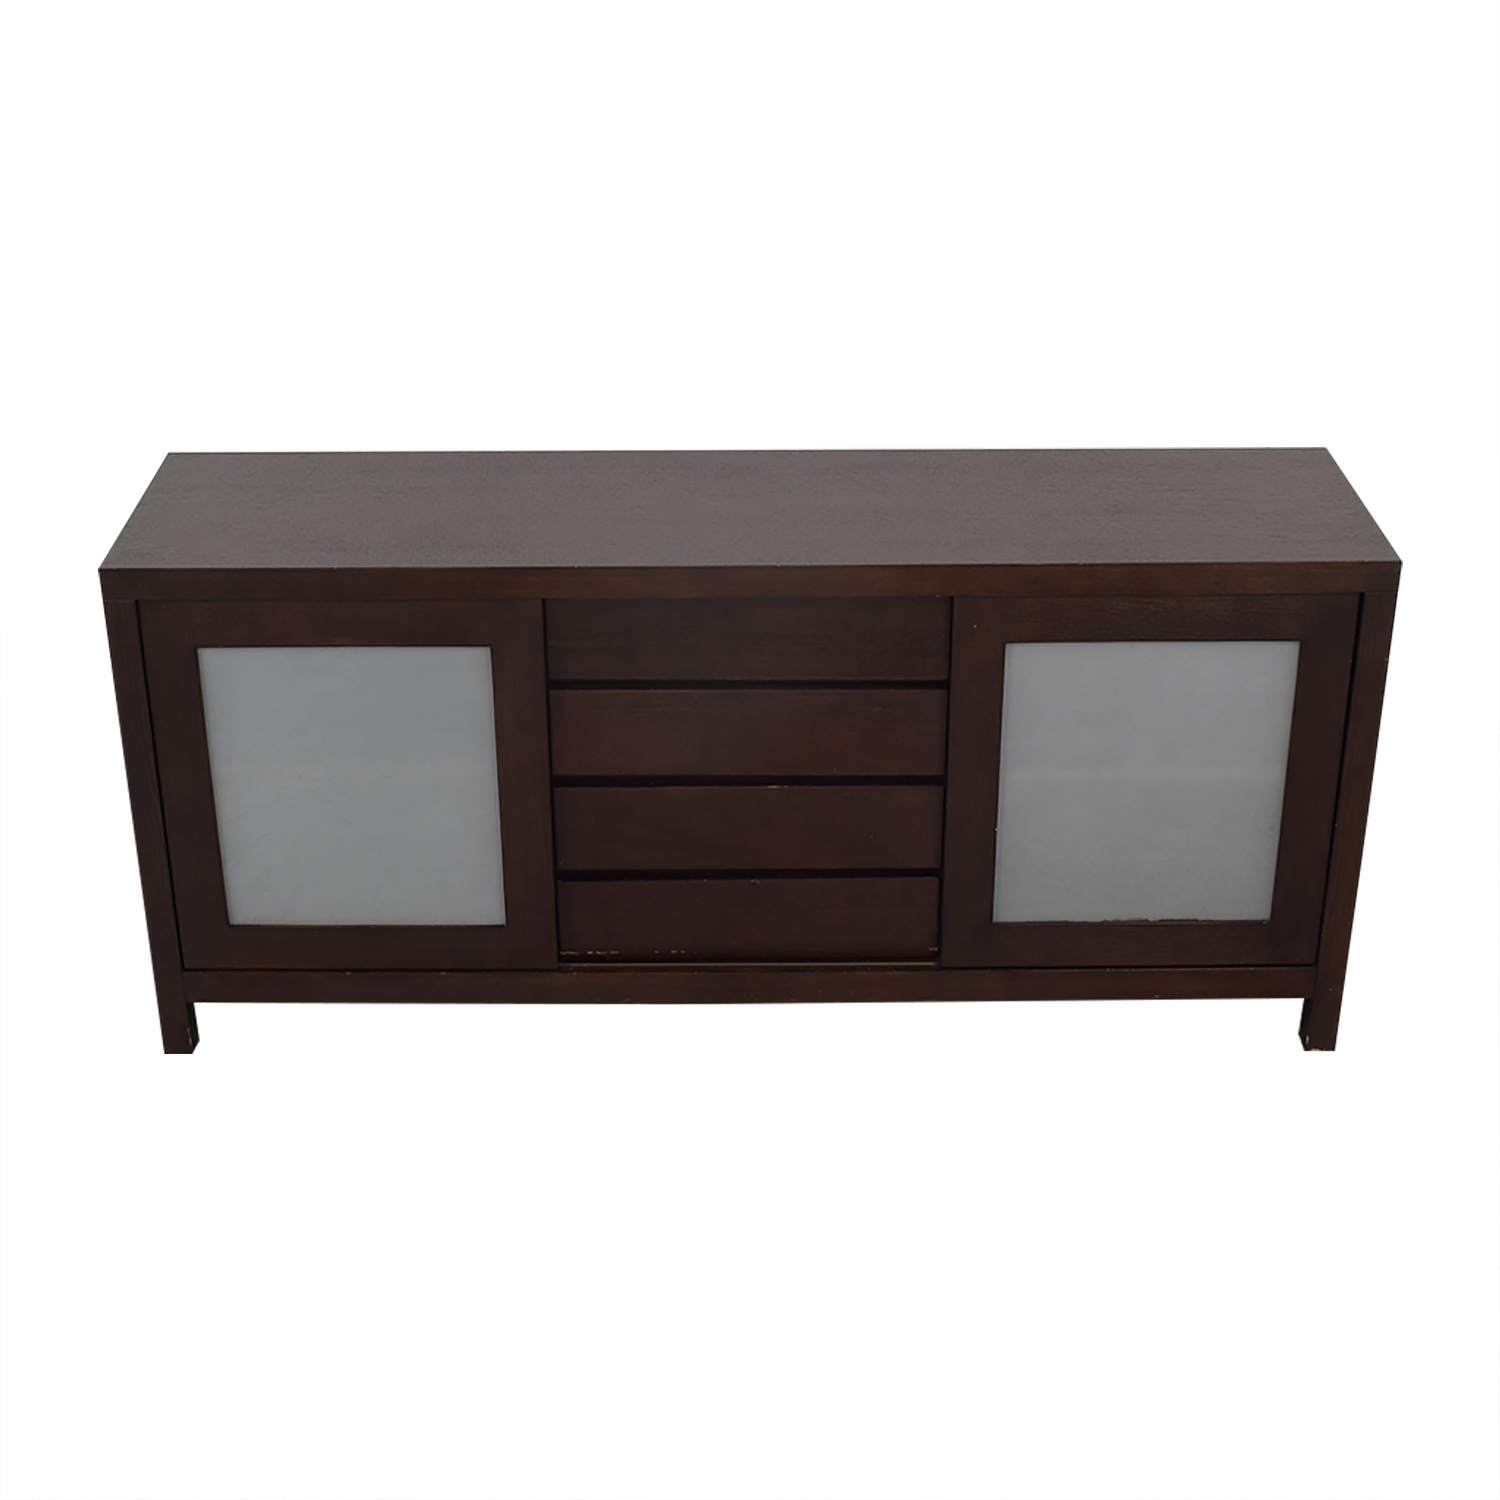 Crate & Barrel Crate & Barrel Sideboard with Cabinets nyc